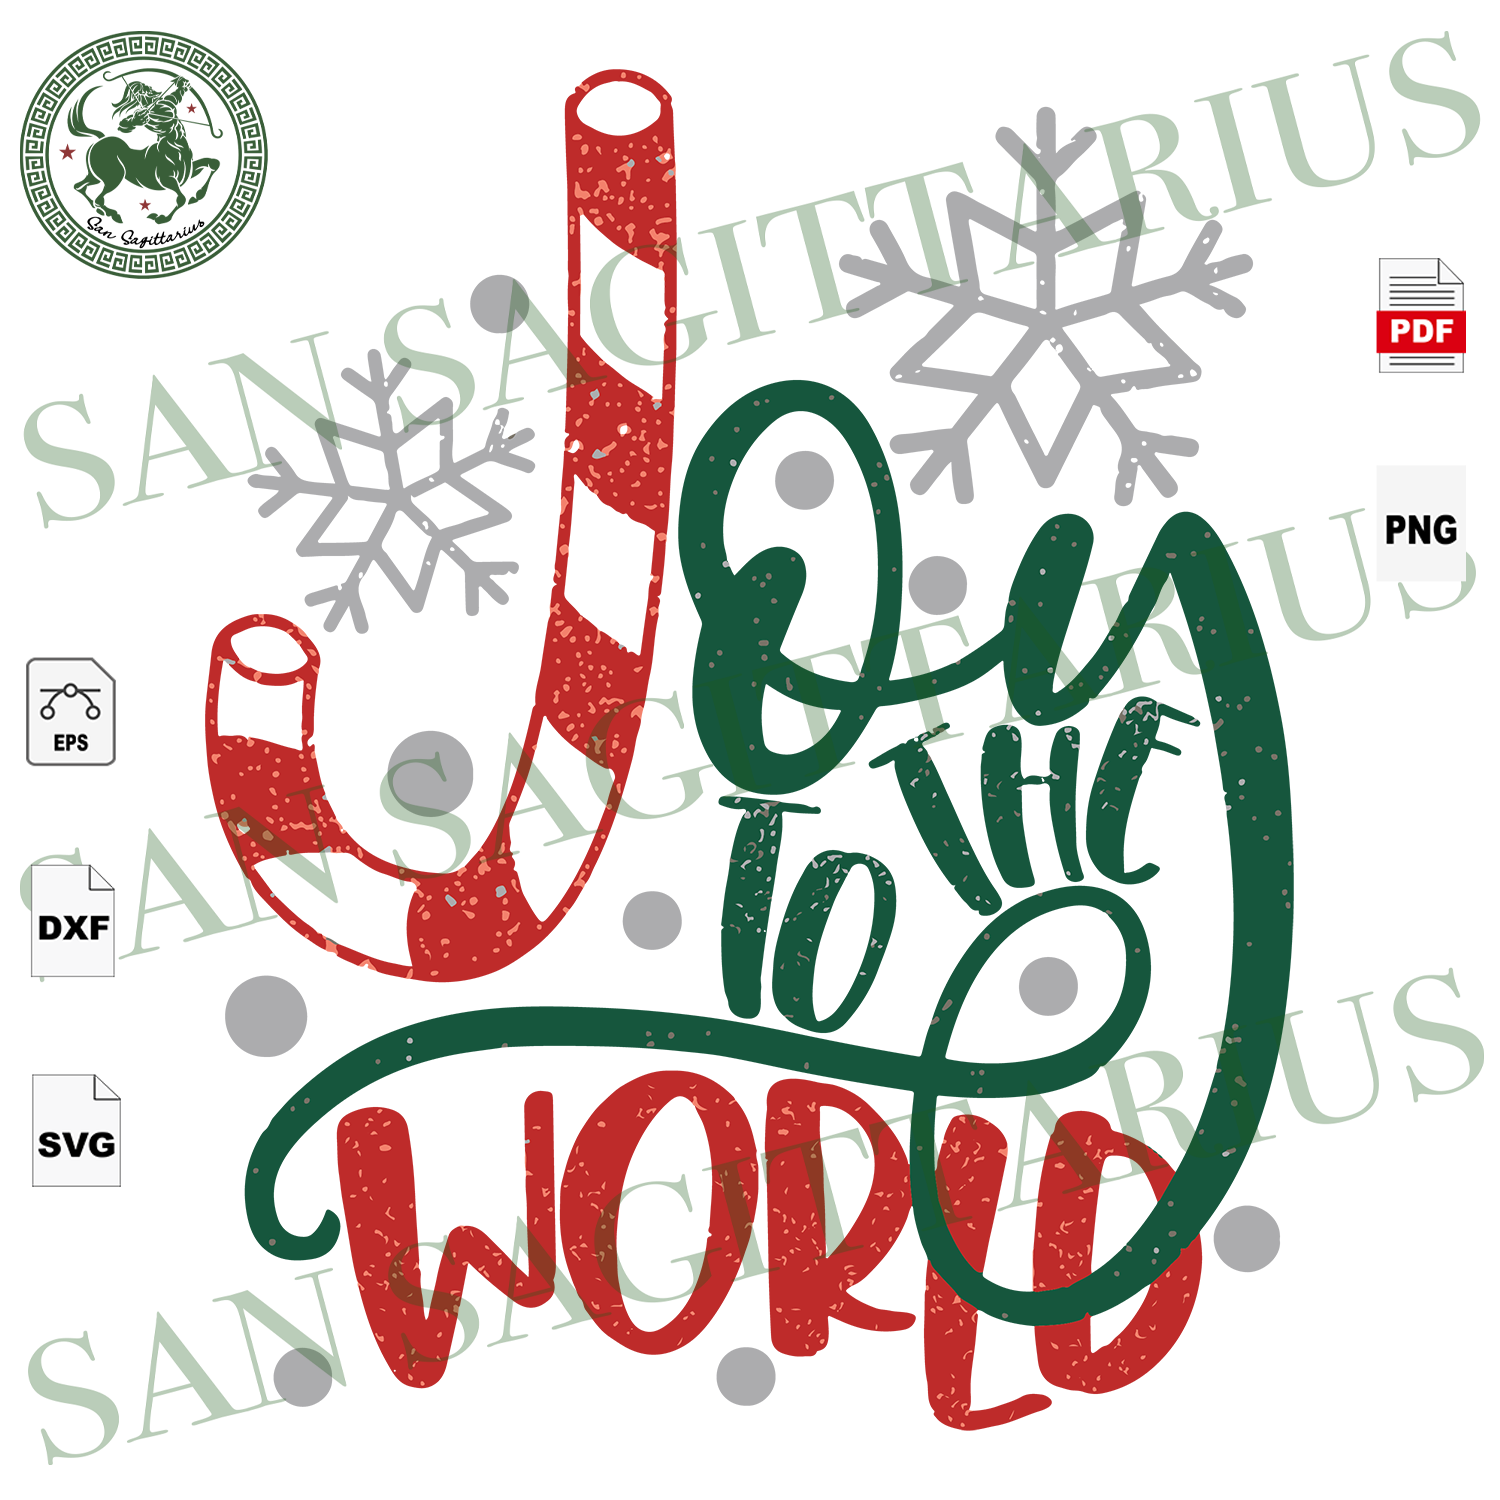 Joy To The World, Christmas Svg, Candy Cane Svg, Christmas Candy Cane, Christmas Holiday, Christmas Party, Christmas Shirts, Xmas Gift, Christmas Gift Ideas, Merry Christmas, Happy Christmas,